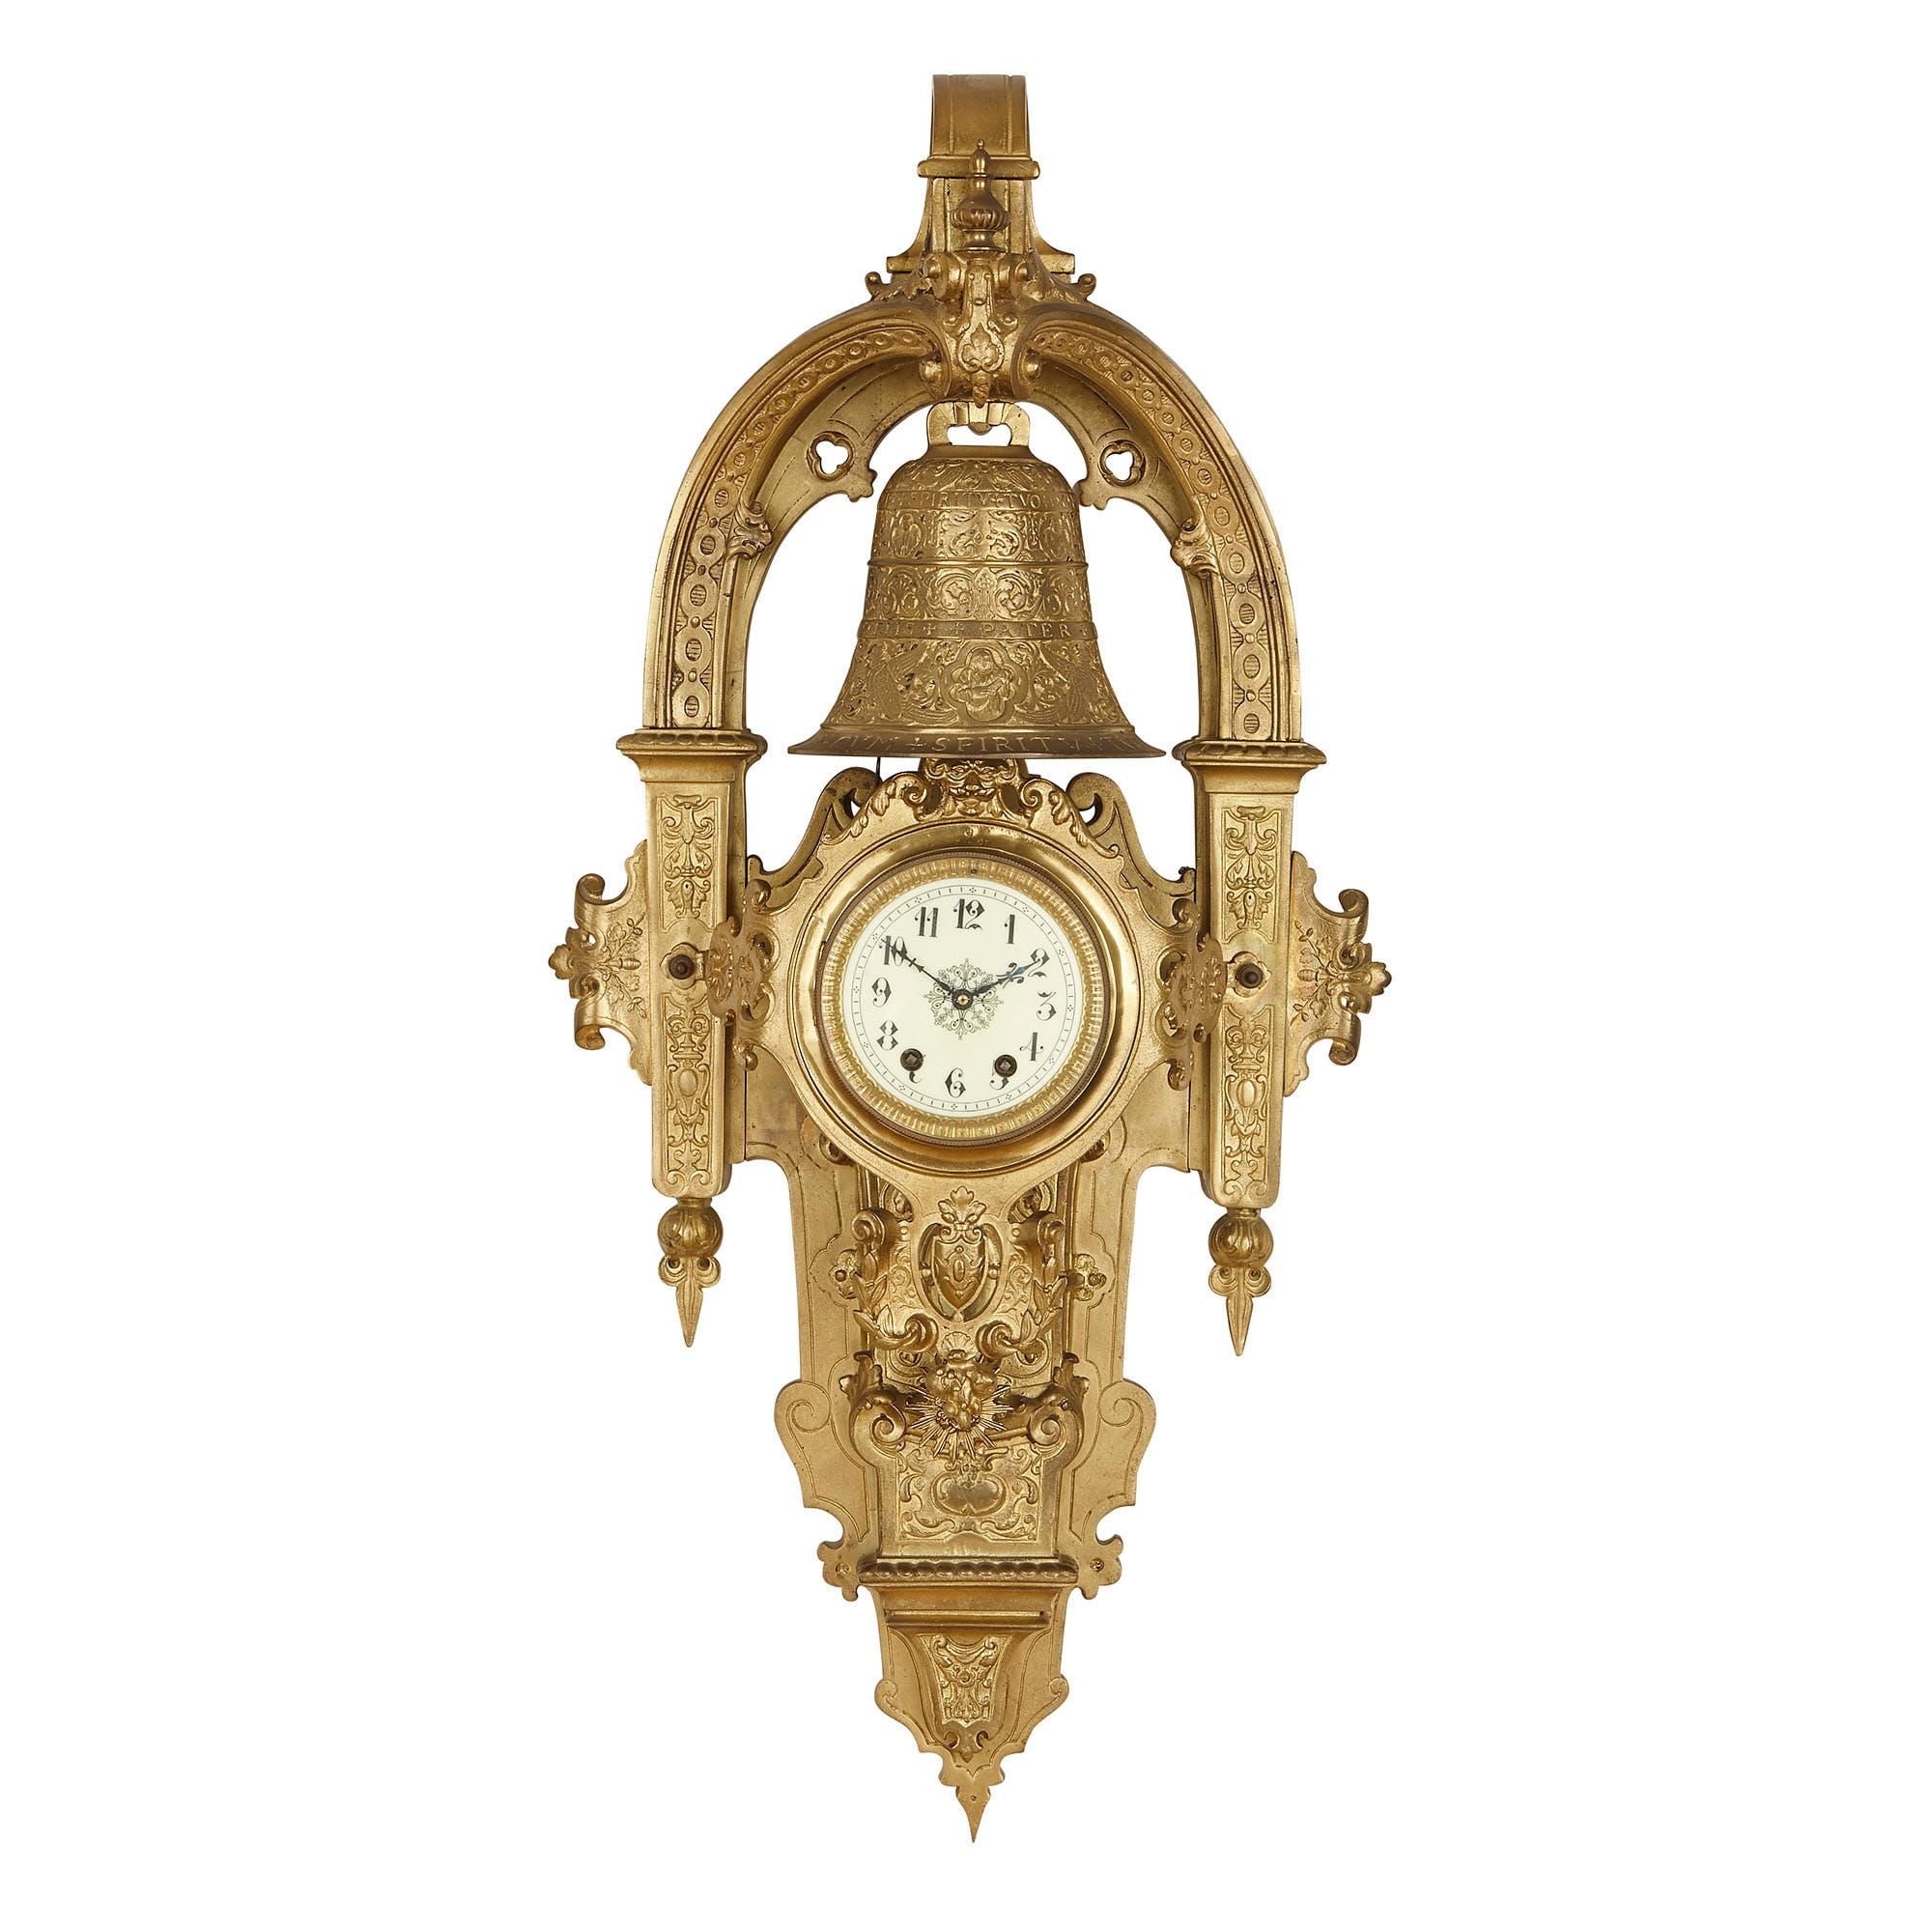 Gold Large Wall Clocks 8 For Sale On 1stdibs